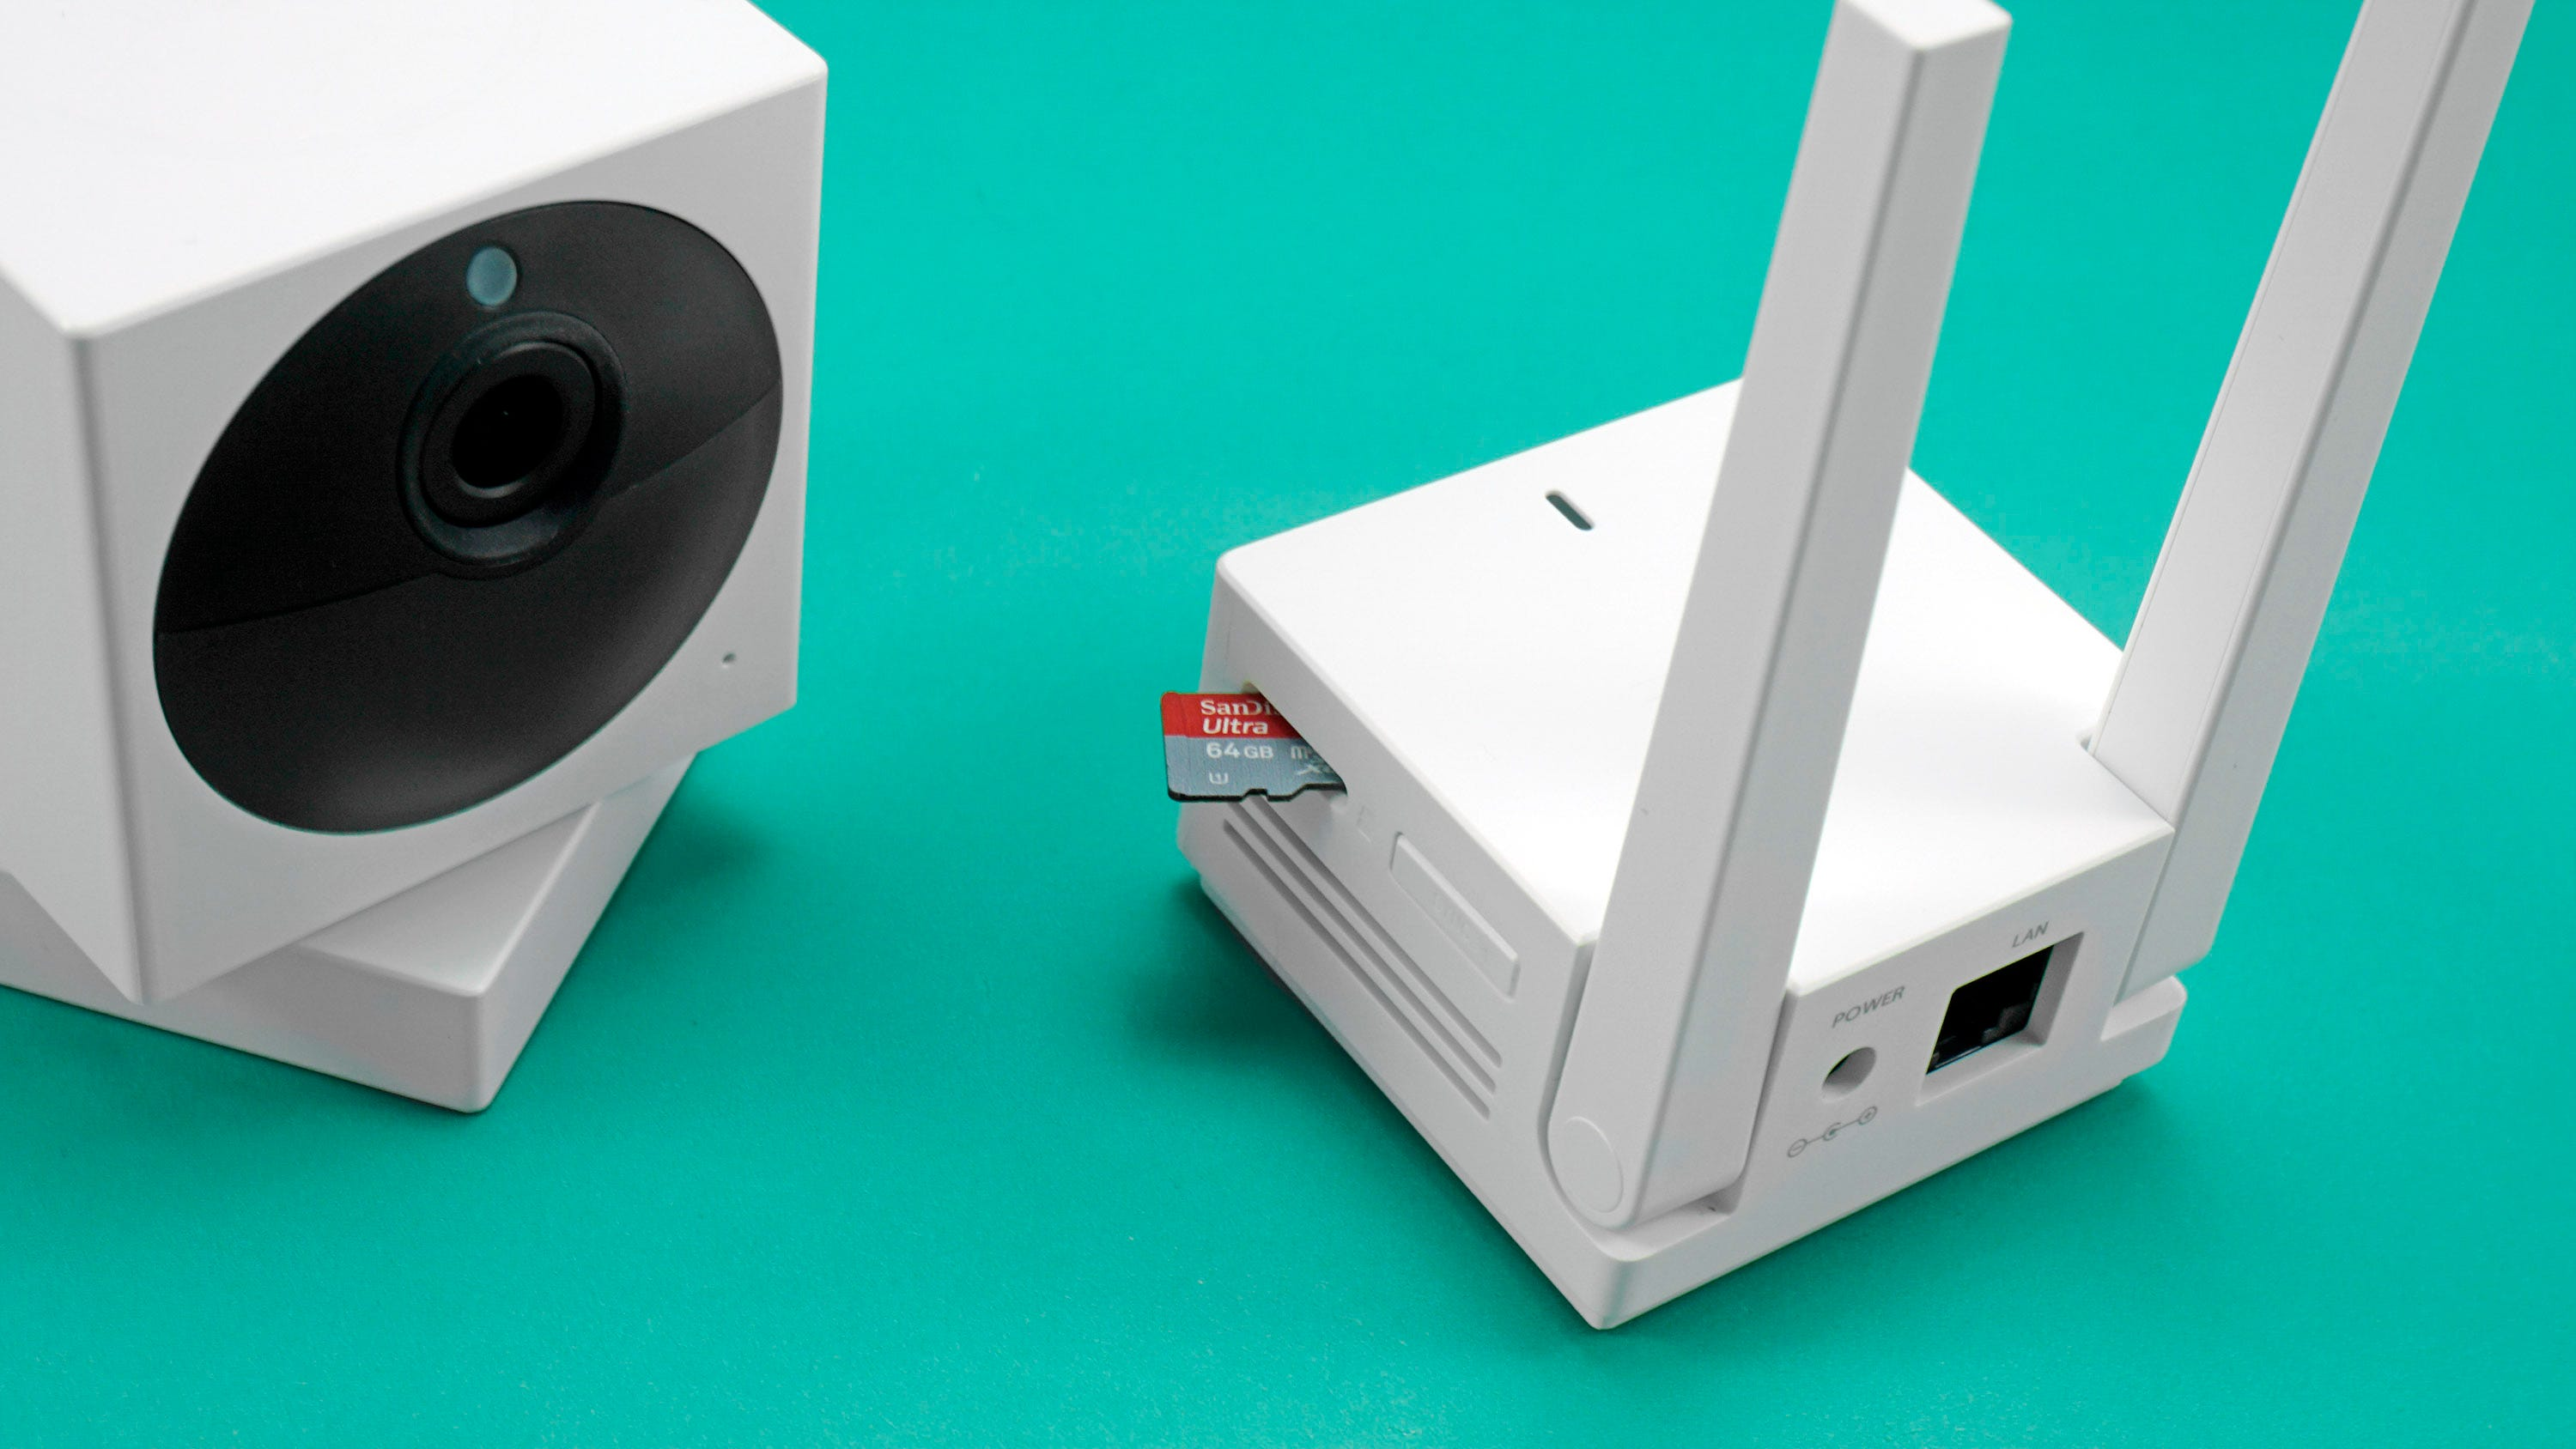 Wyze Cam Outdoor and base station with MicroSD card